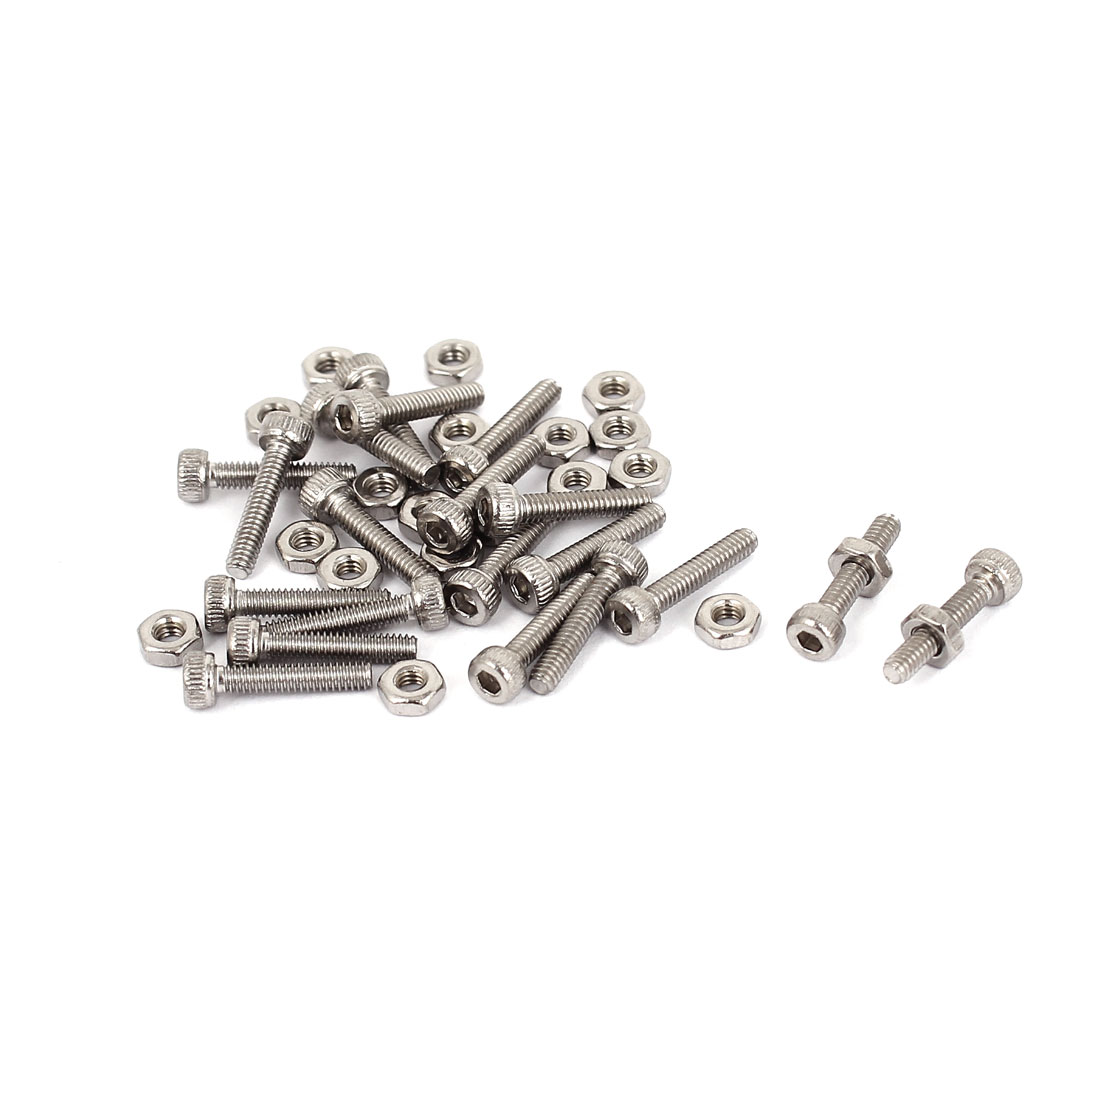 M2x10mm Stainless Steel Hex Socket Head Knurled Cap Screws Bolts Nut Set 20Pcs